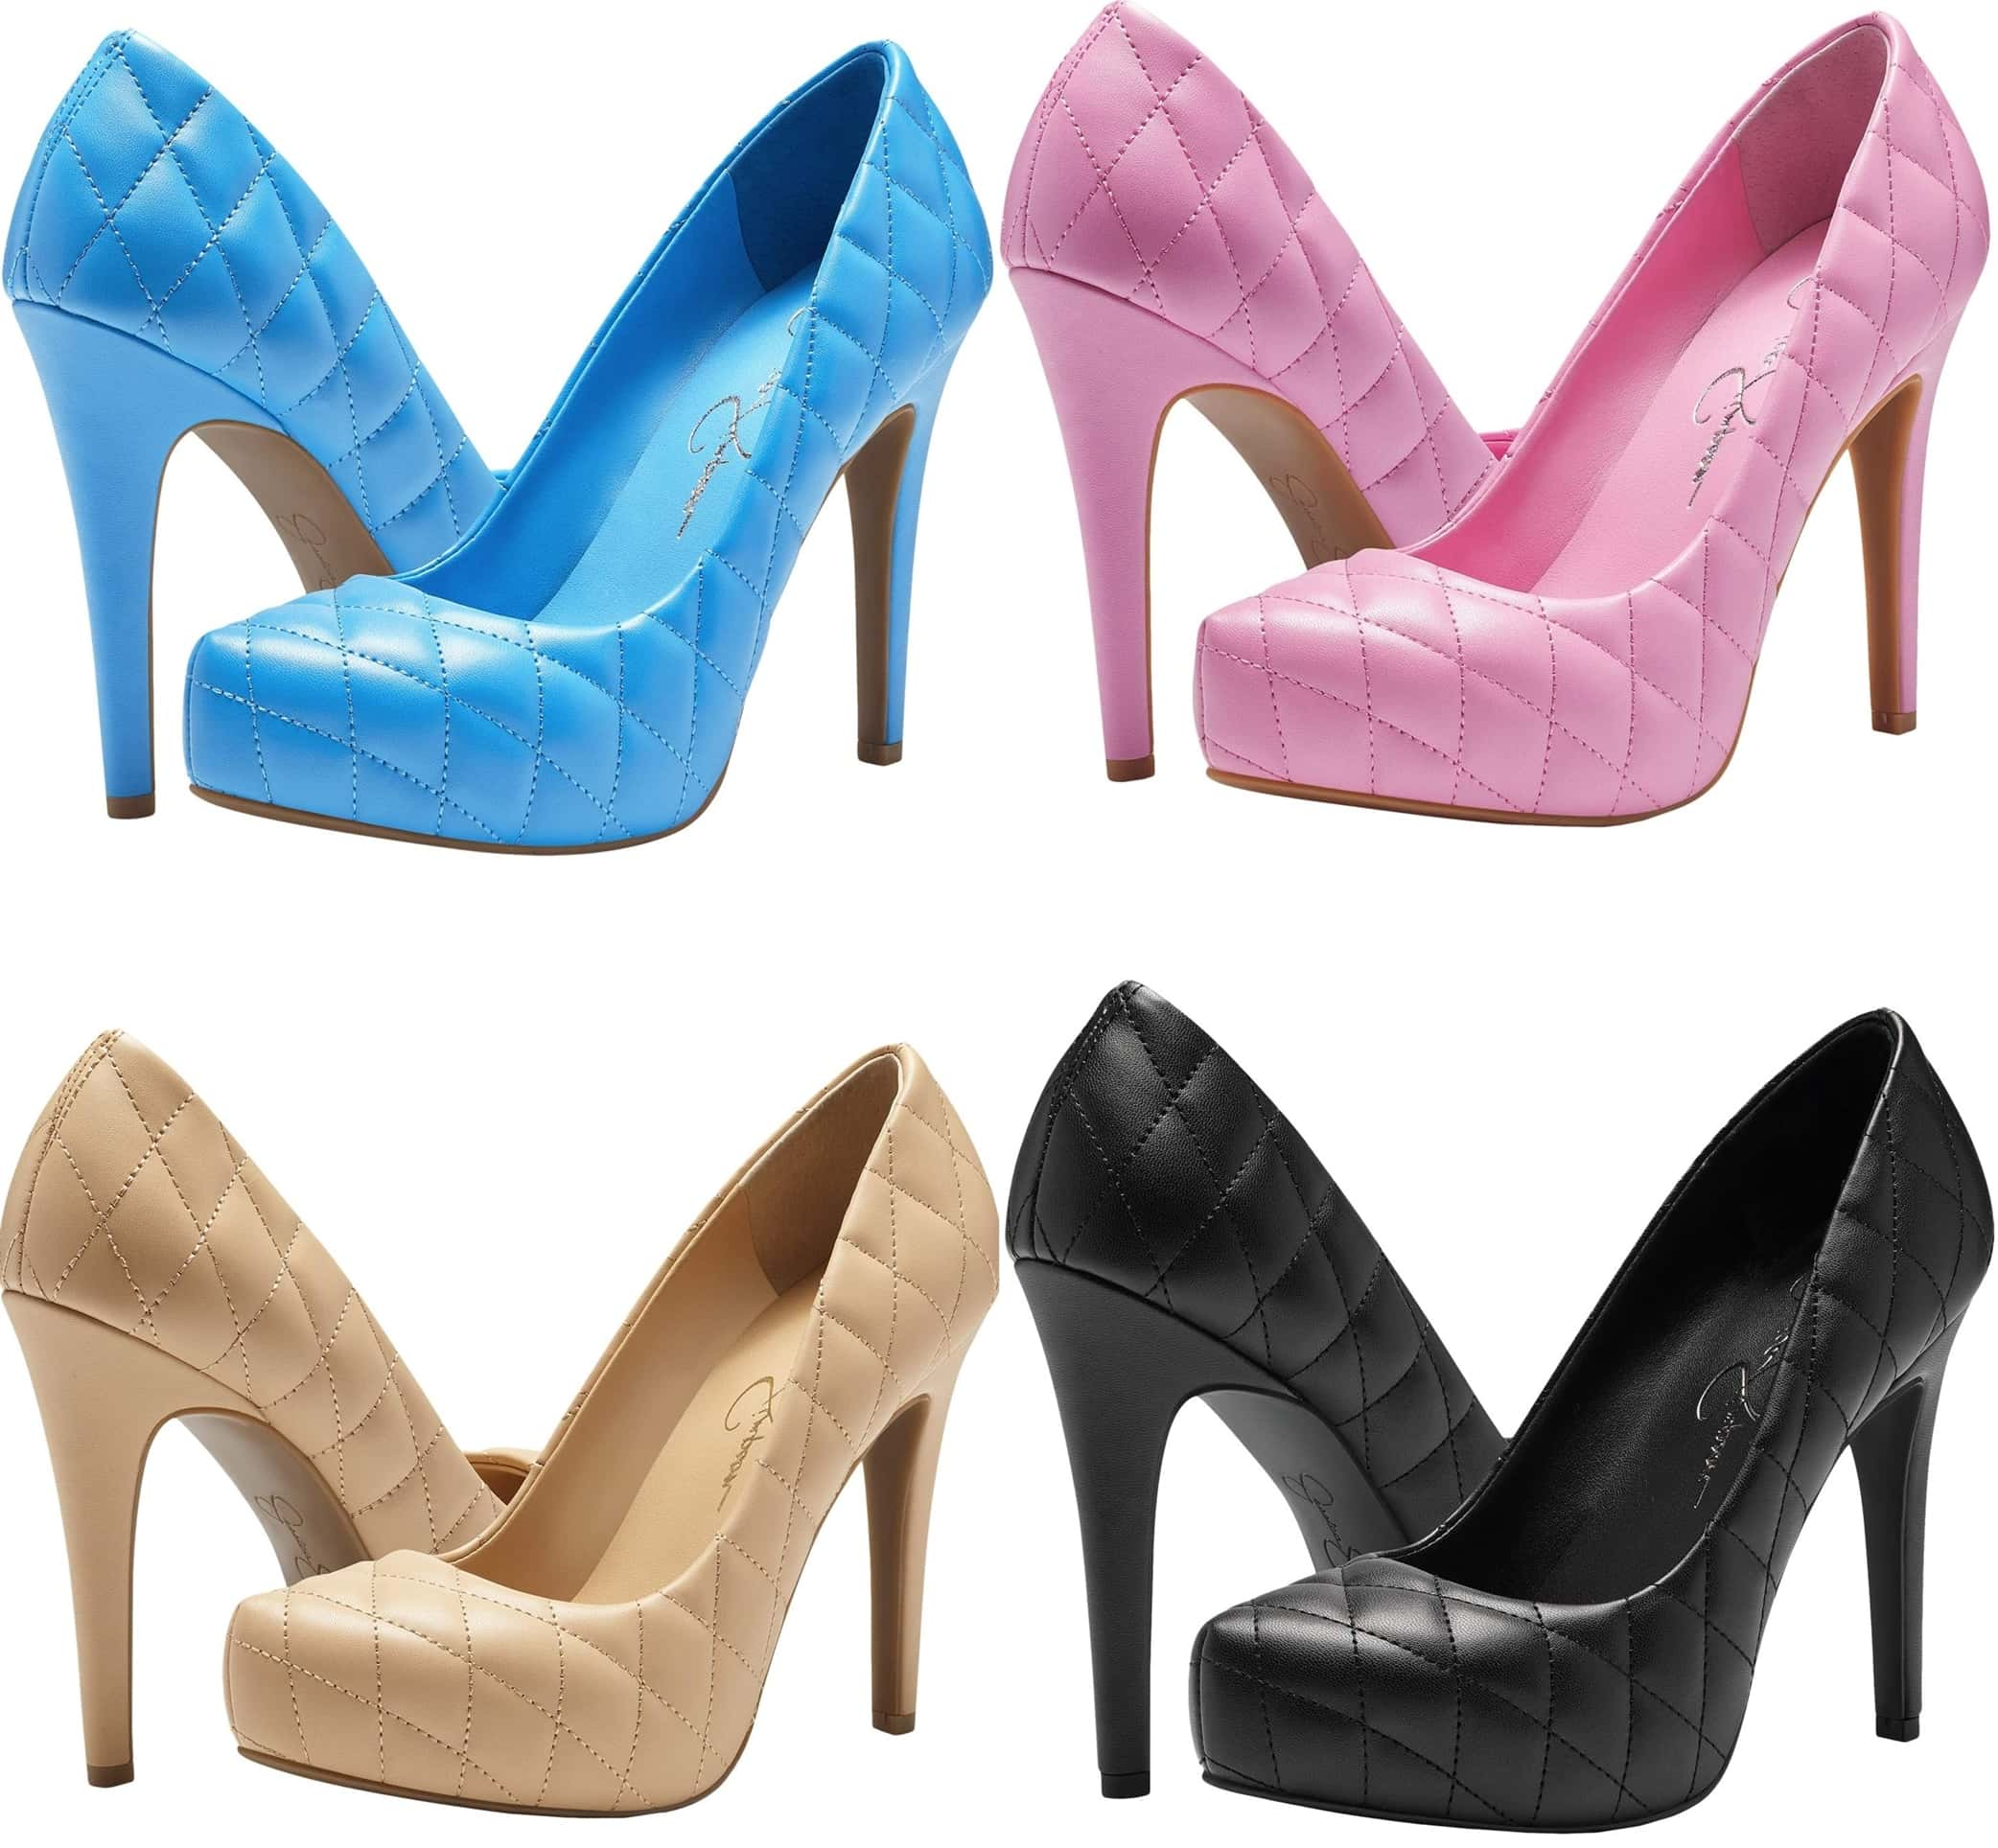 The Jessica Simpson Parisah platform pump is the perfect addition to your must-have collection